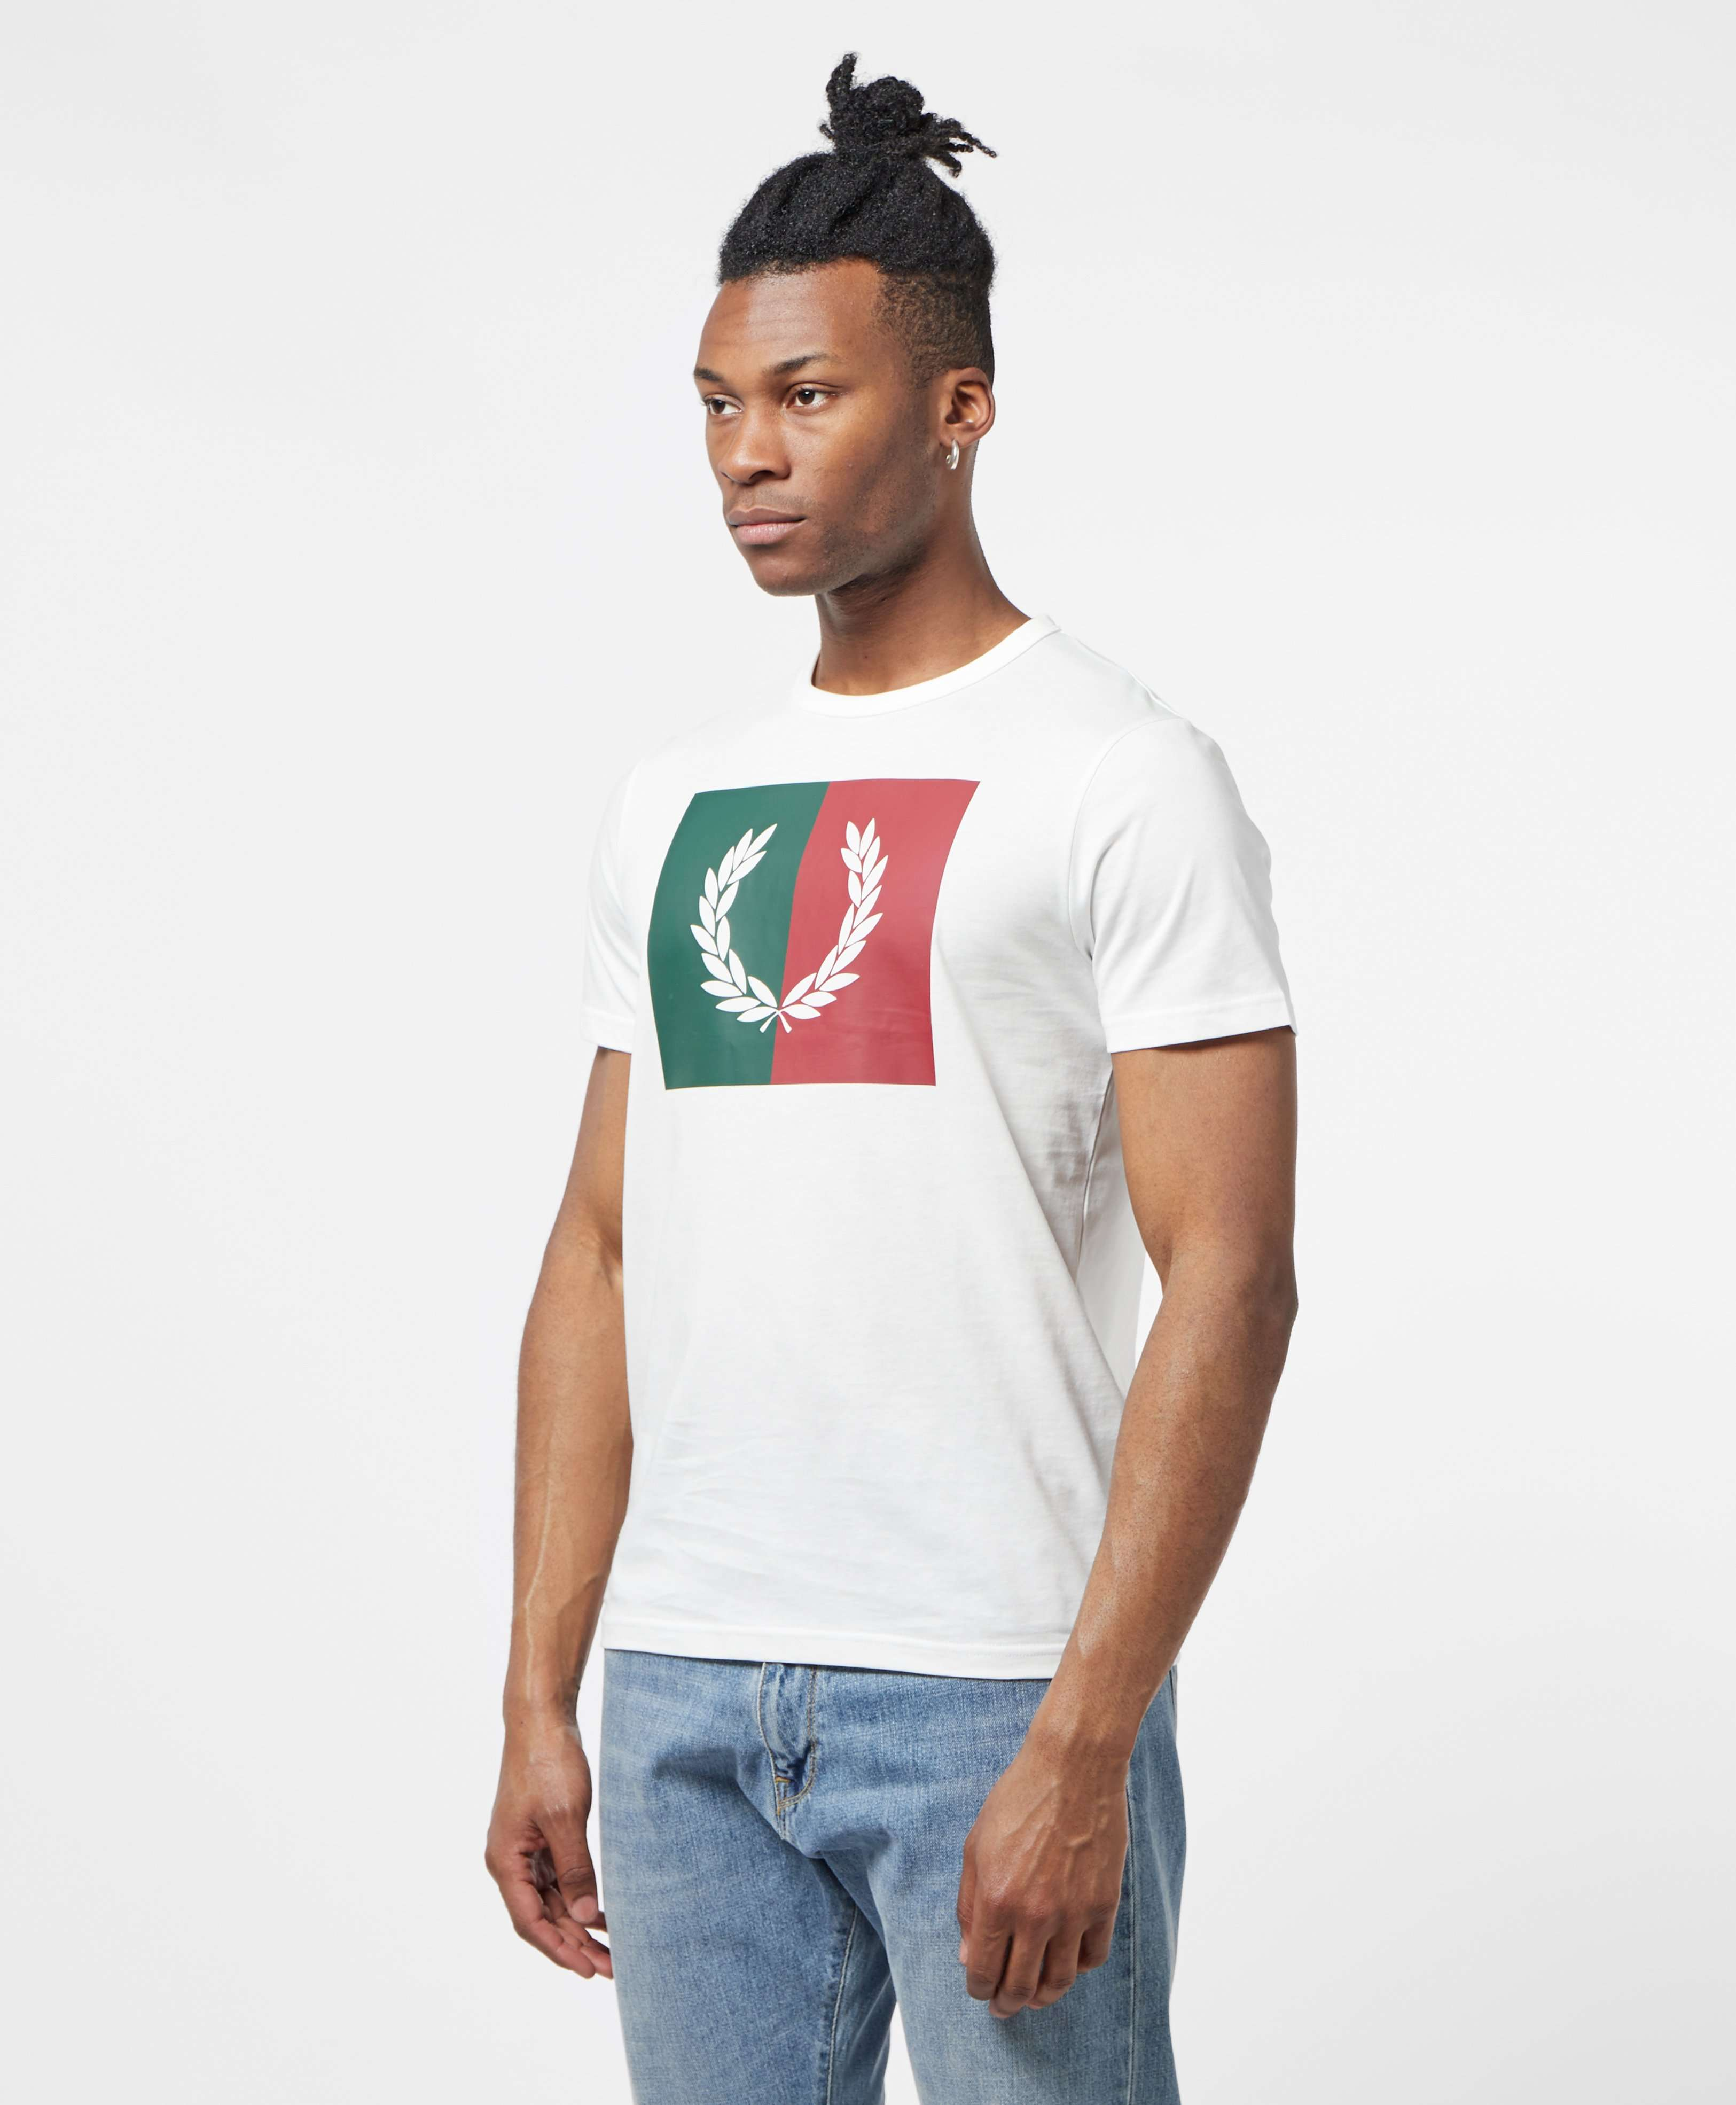 Fred Perry Laurel Wreath Short Sleeve T-Shirt